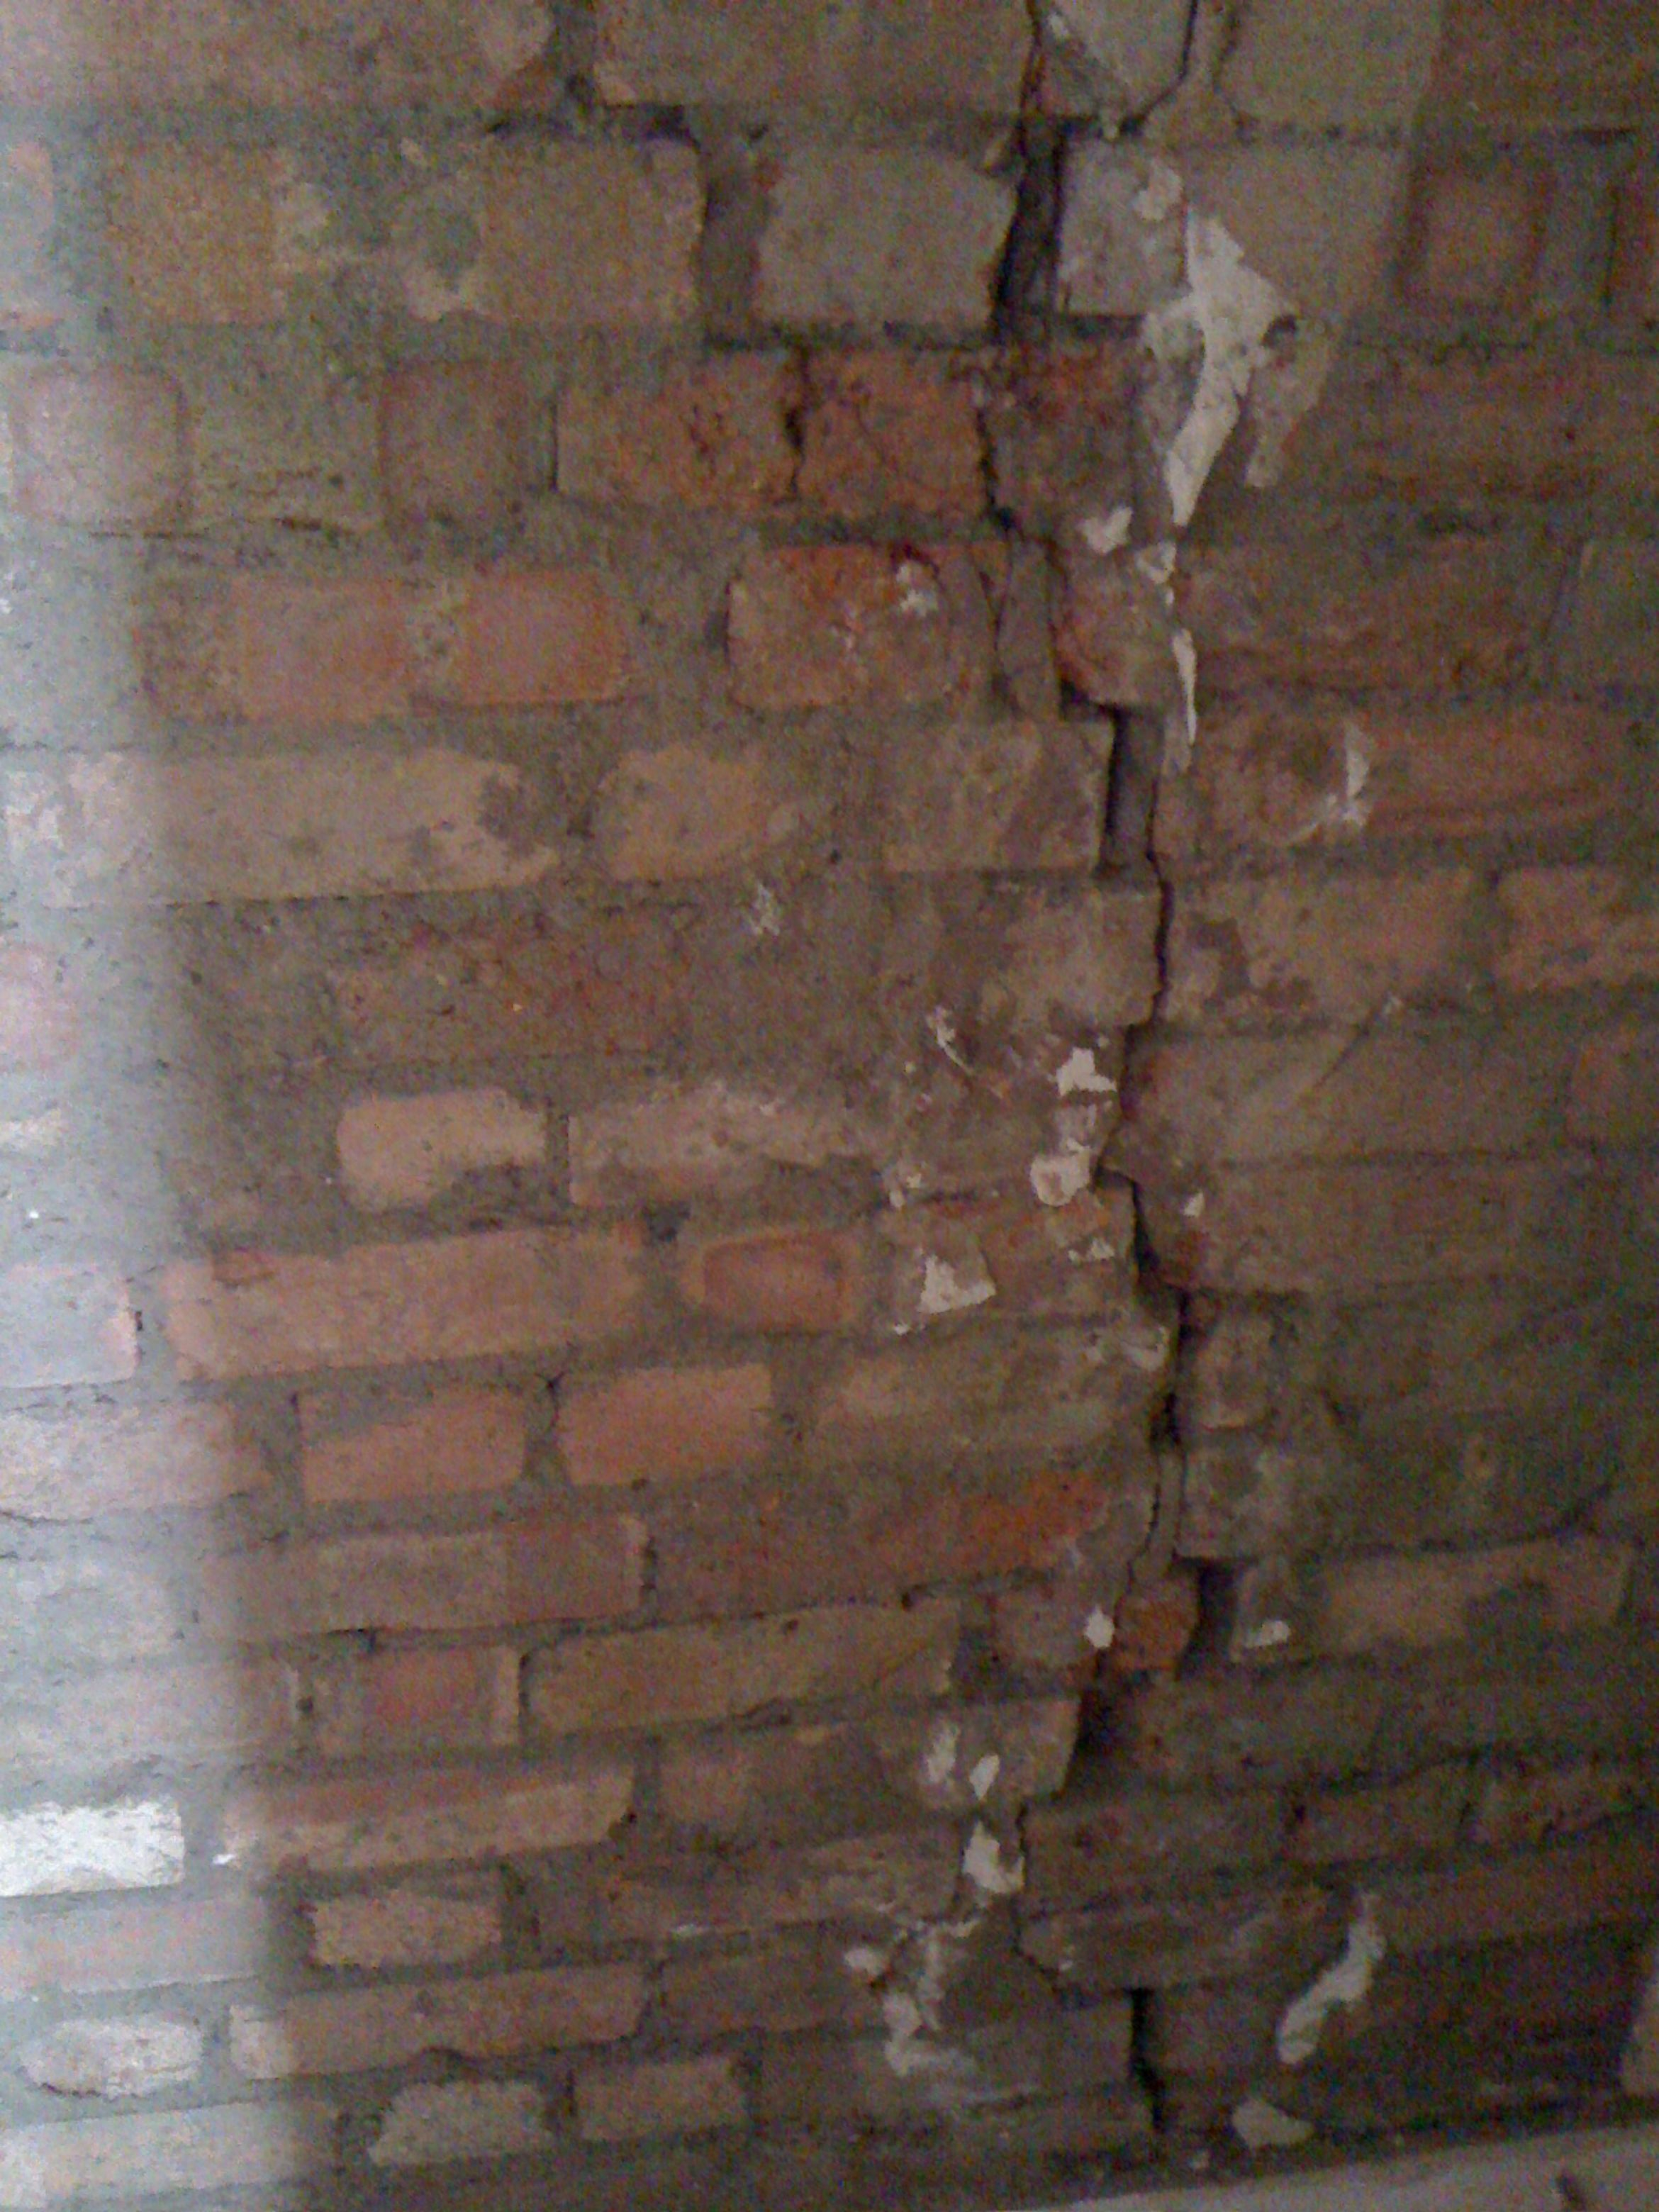 A long crack had appeared on an internal wall of the house